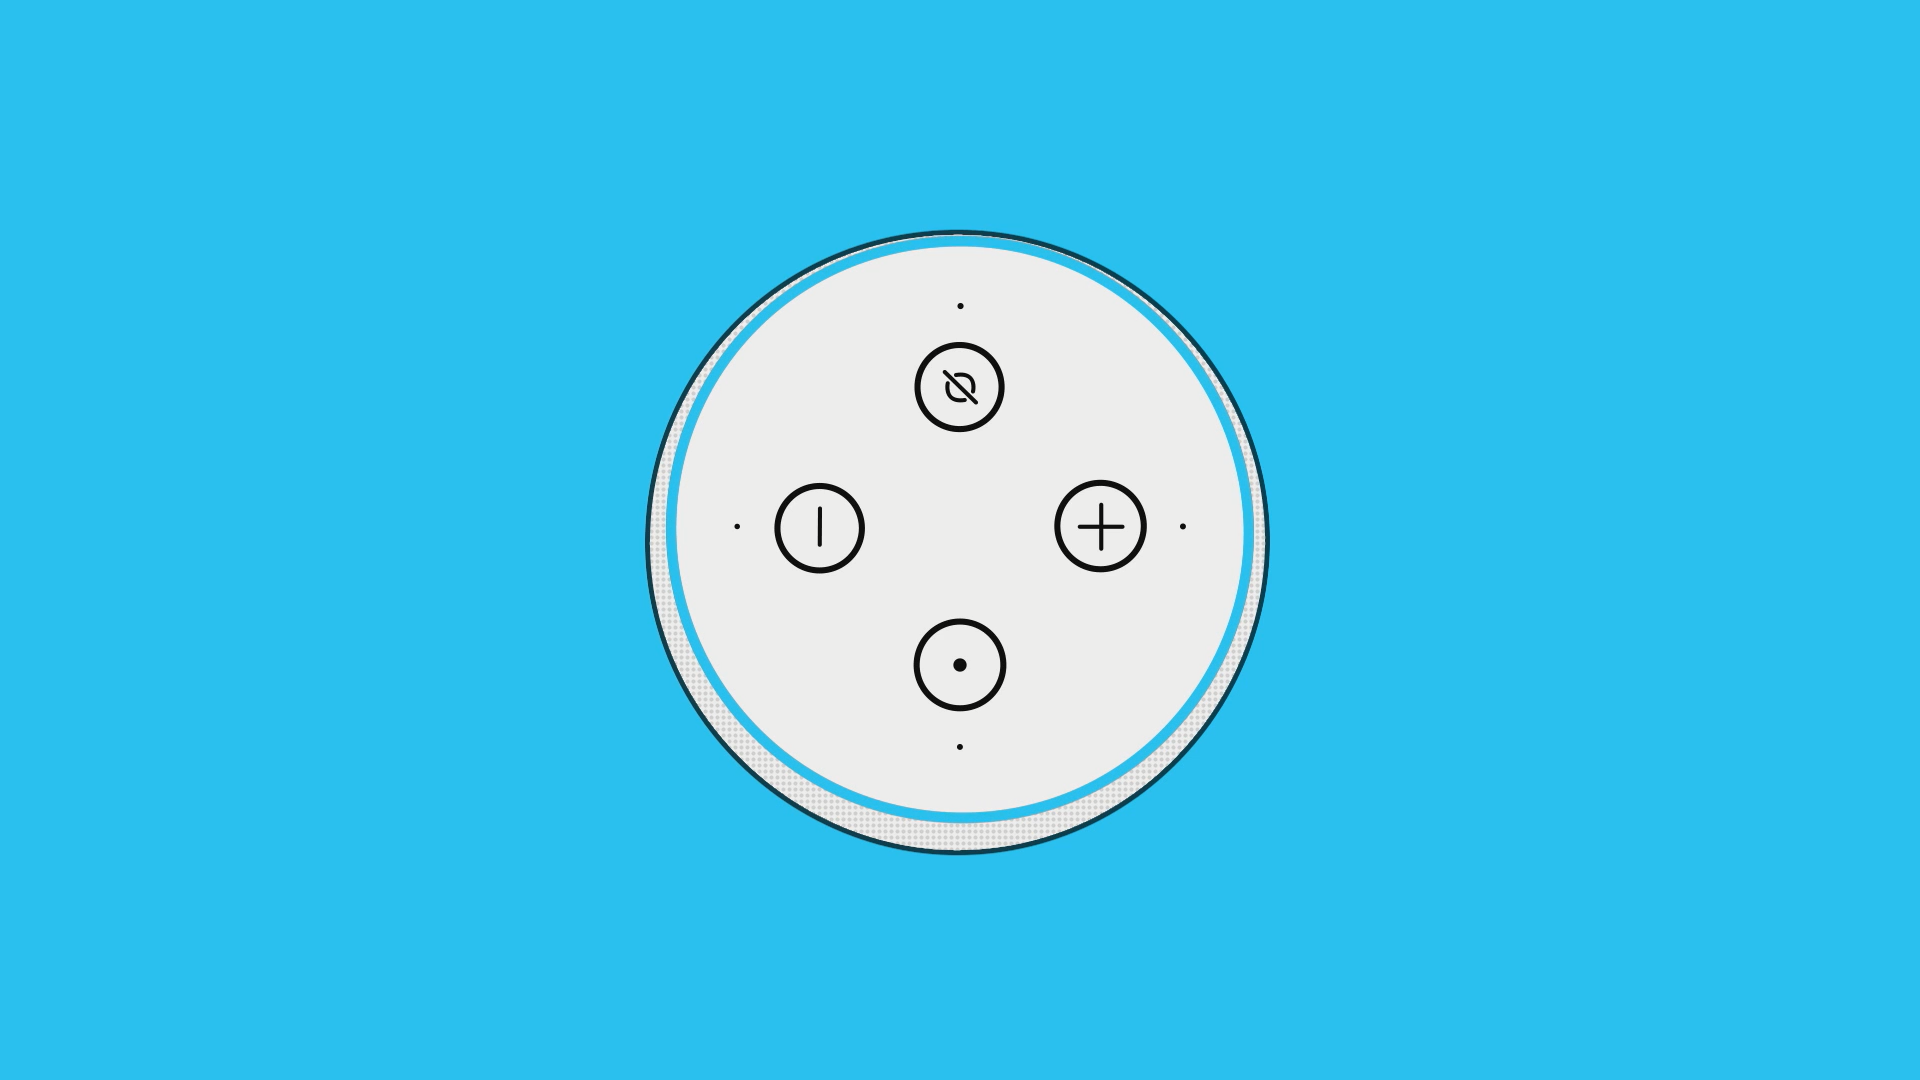 Illustration of the top view of an Amazon Echo device. The ring light is blue.